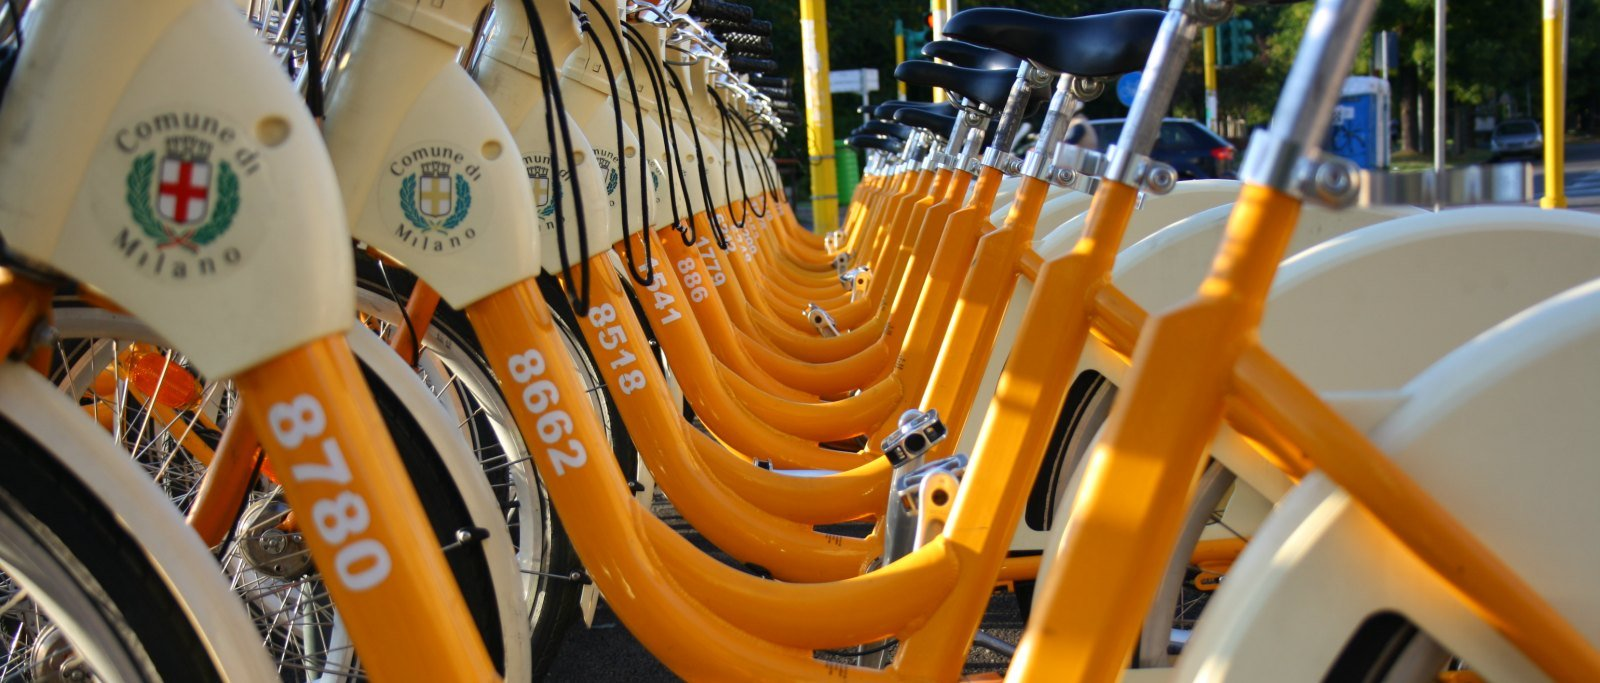 Milan Bike Share